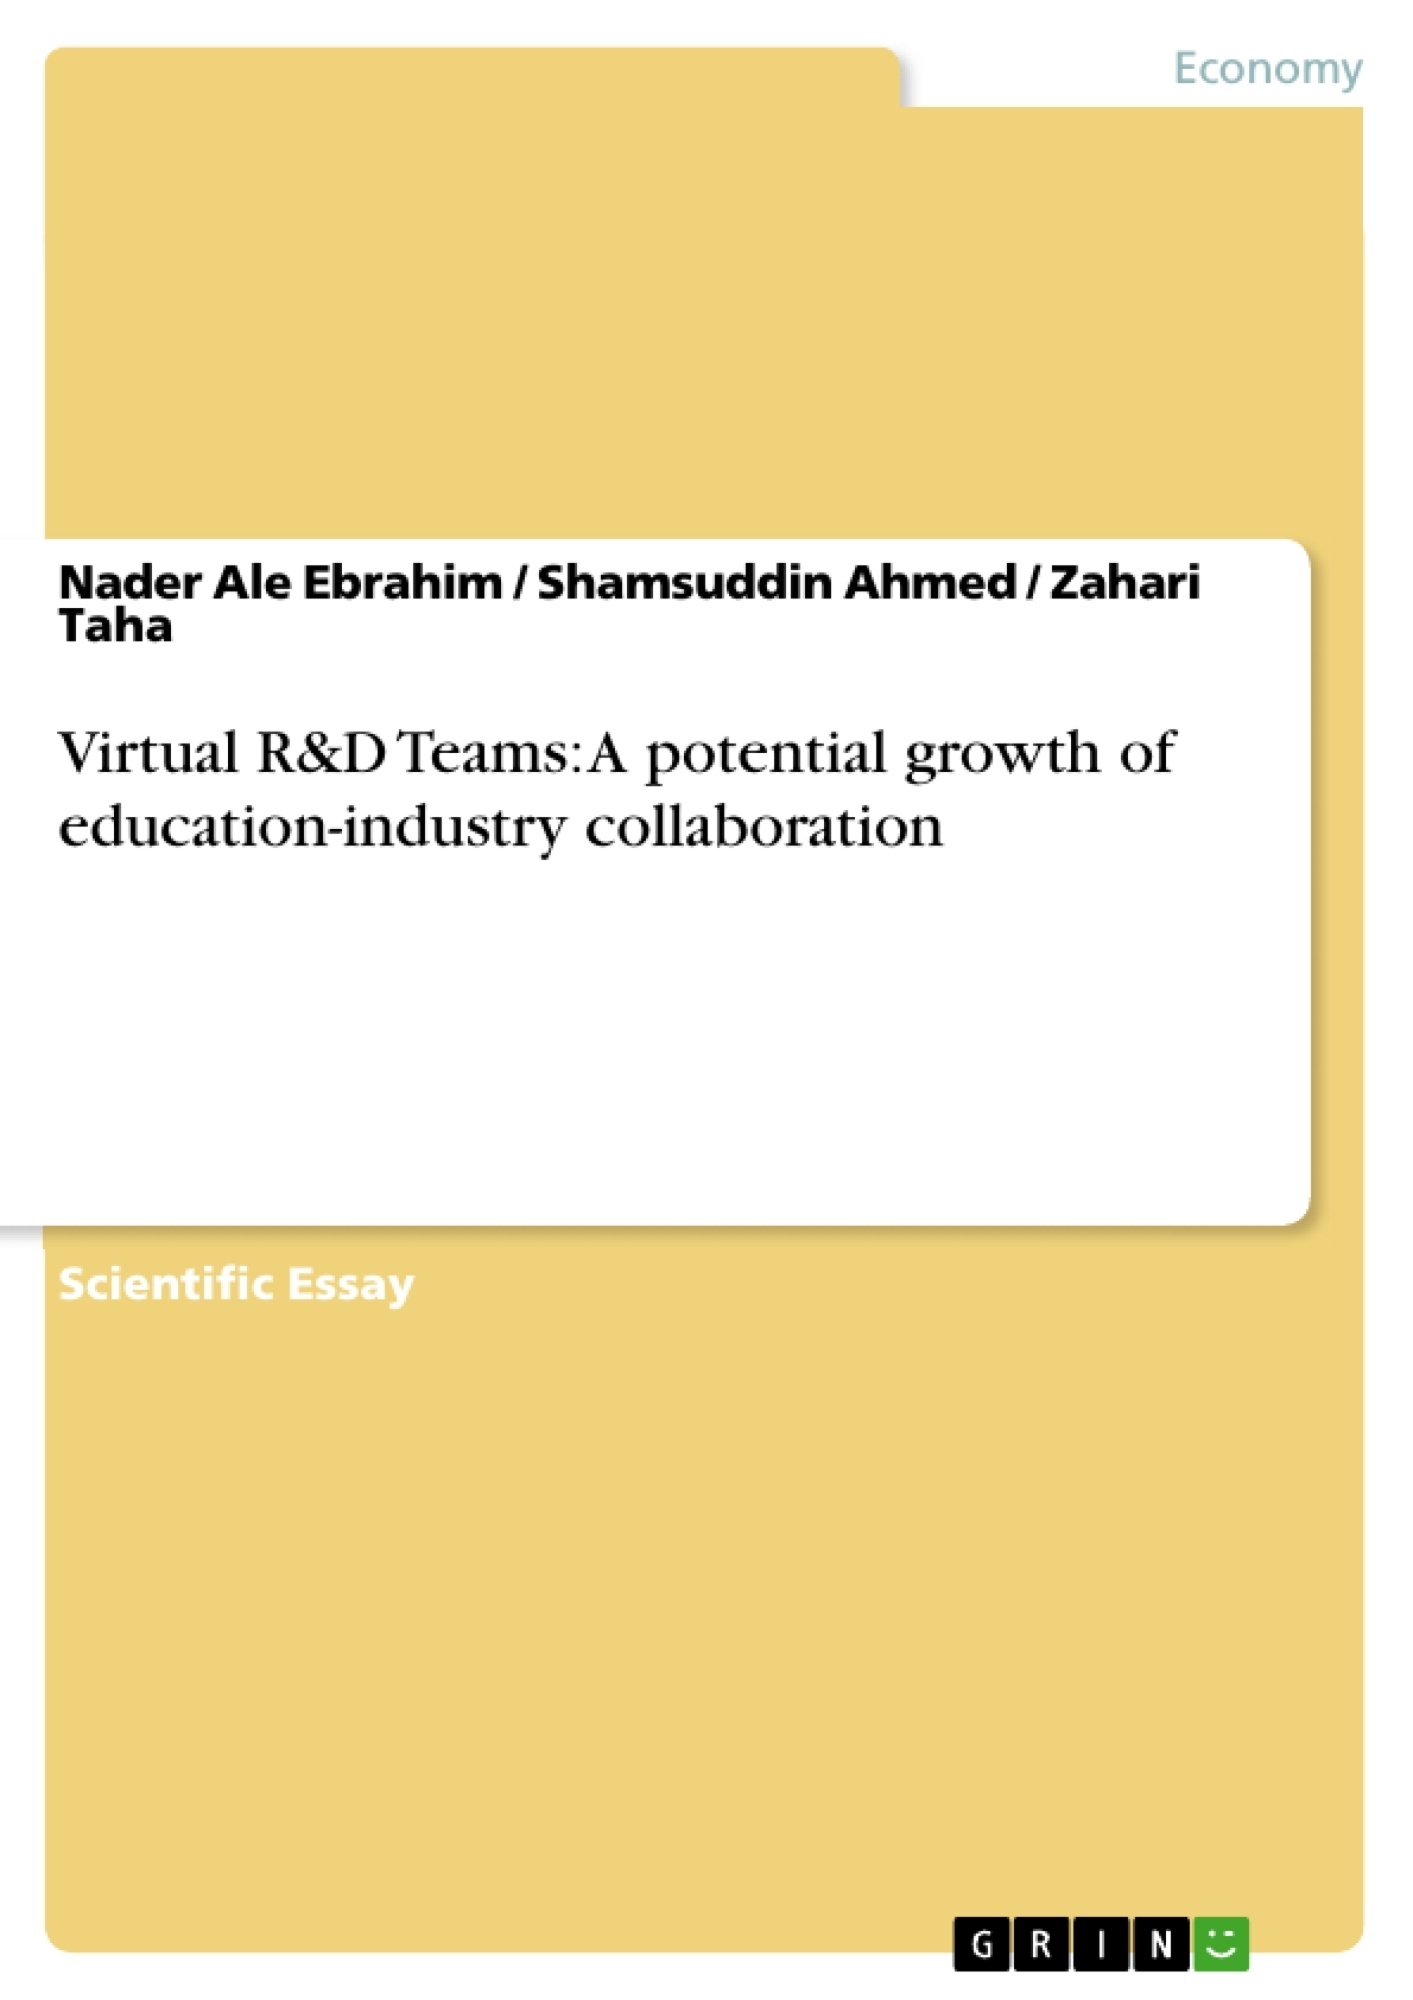 Title: Virtual R&D Teams: A potential growth of education-industry collaboration